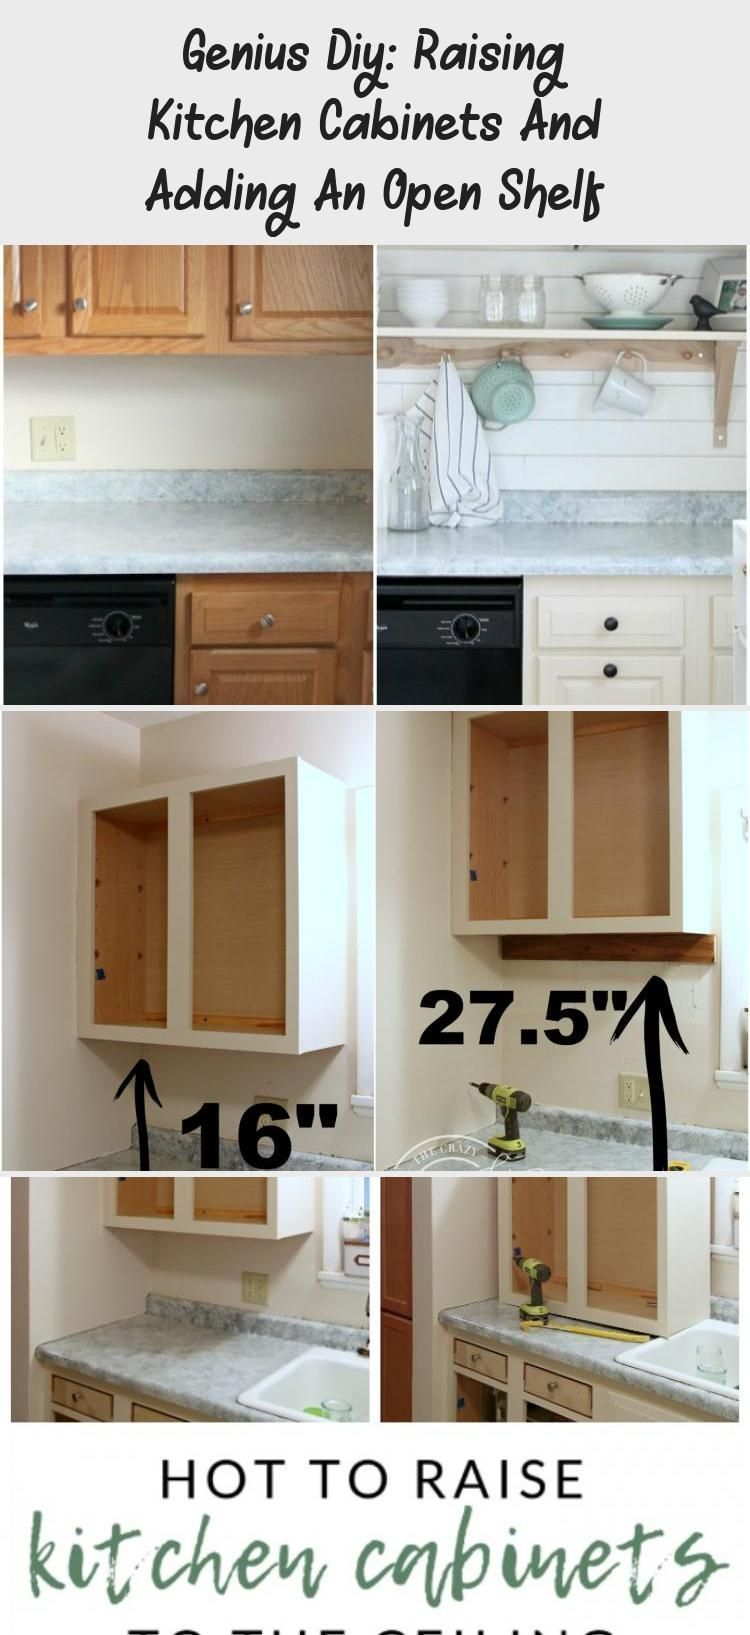 Genius Diy Raise The Kitchen Cabinets And Add An Open Shelf Decor Add Cabinets Cheapkitchencabinetsbudget C In 2020 Shelves Shelf Decor Kitchen Storage Shelves